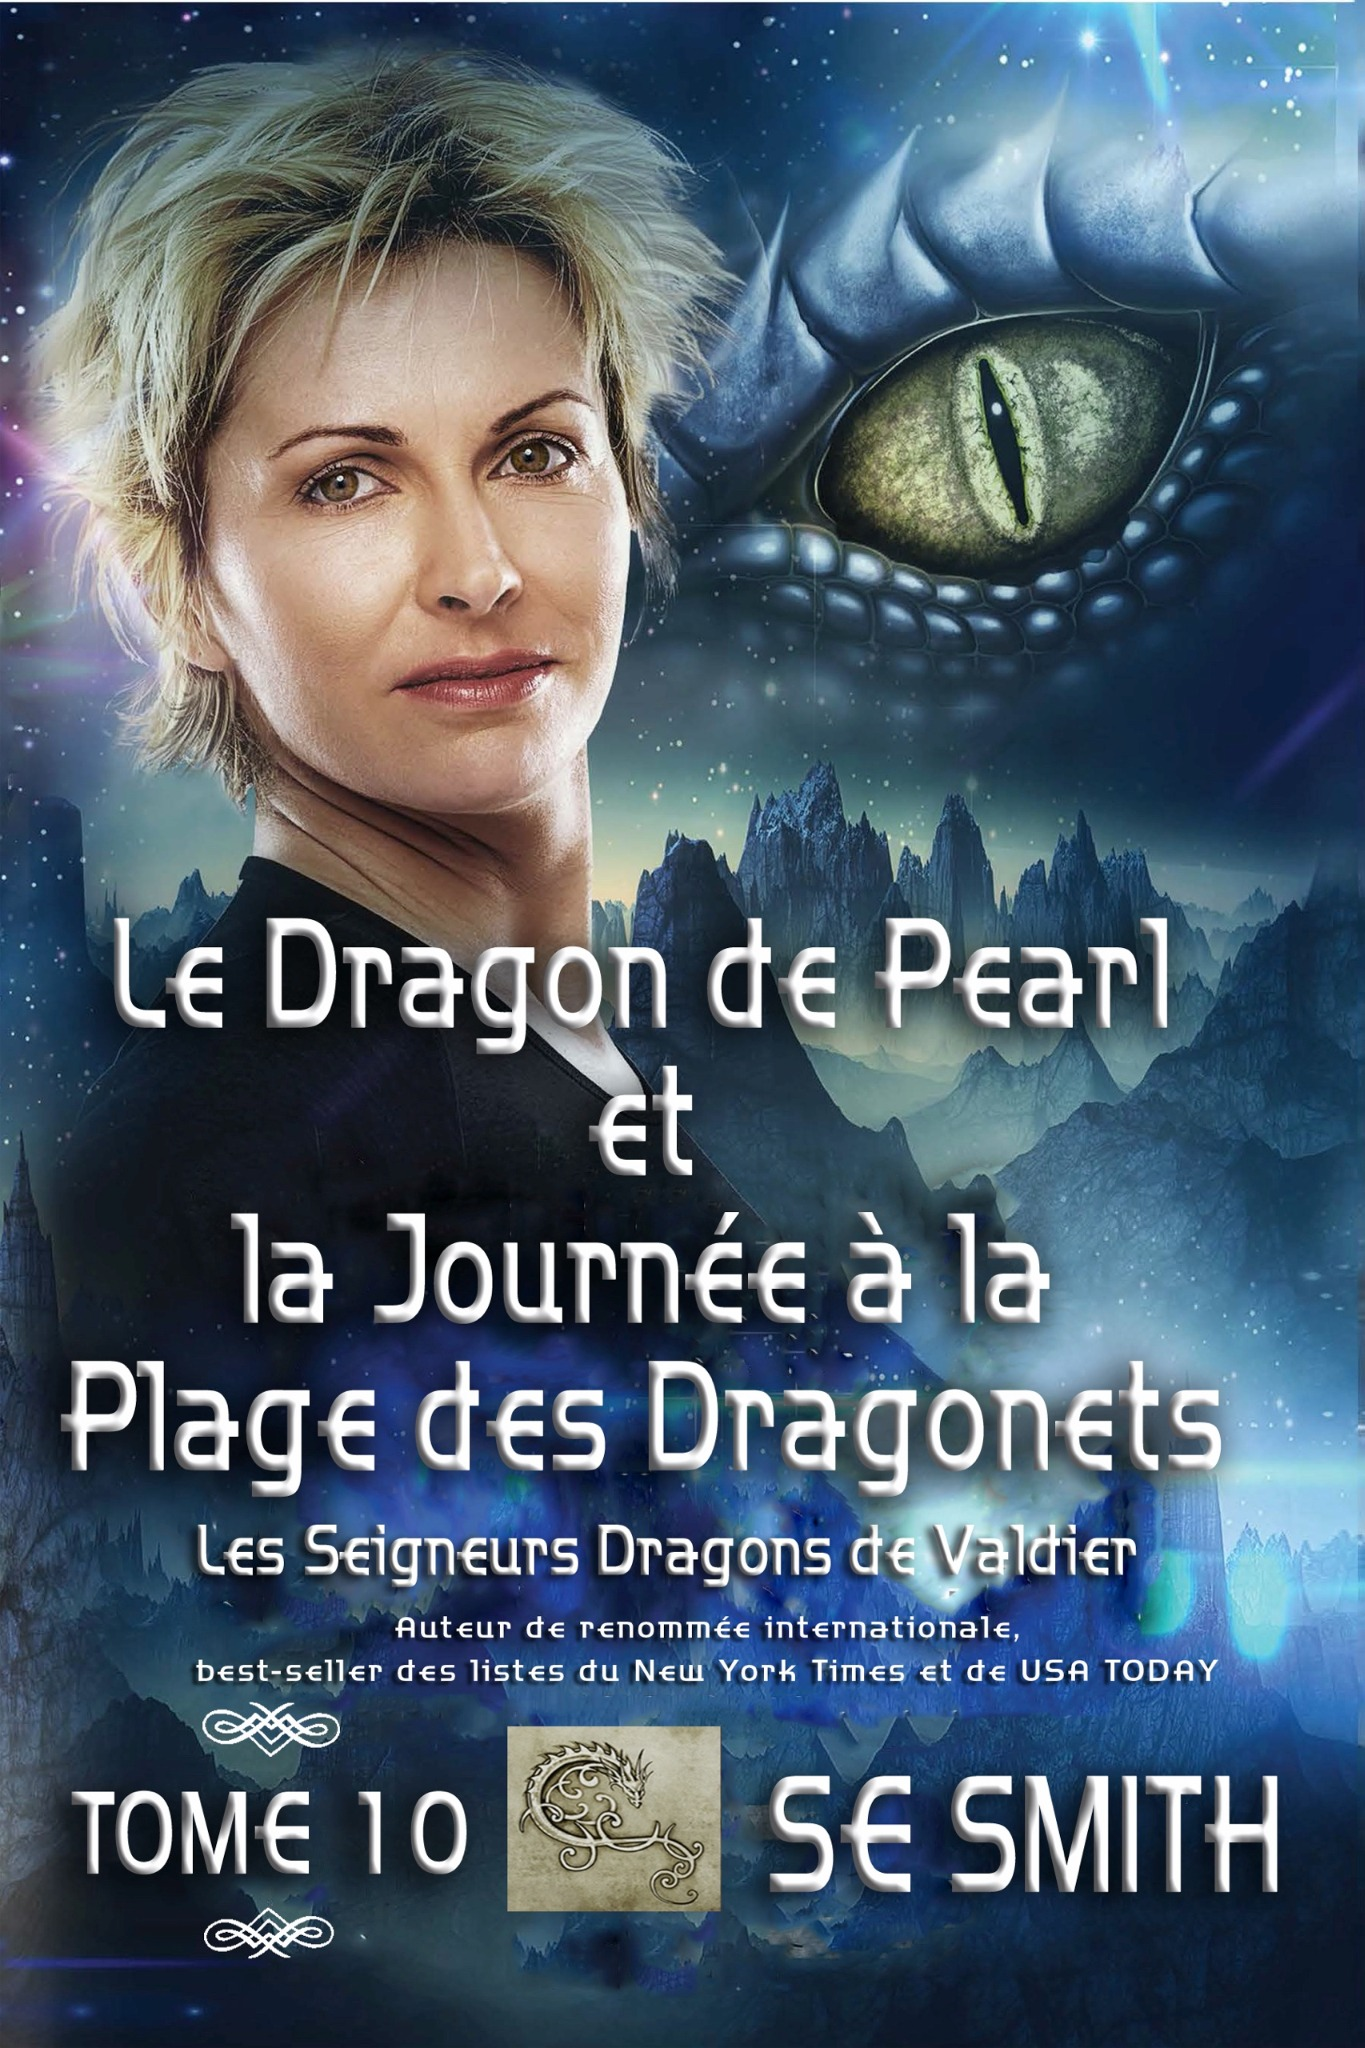 Le Dragon de Pearl:  Les Seigneurs Dragons de Valdier Tome 10 (ebook: Kindle et epub)